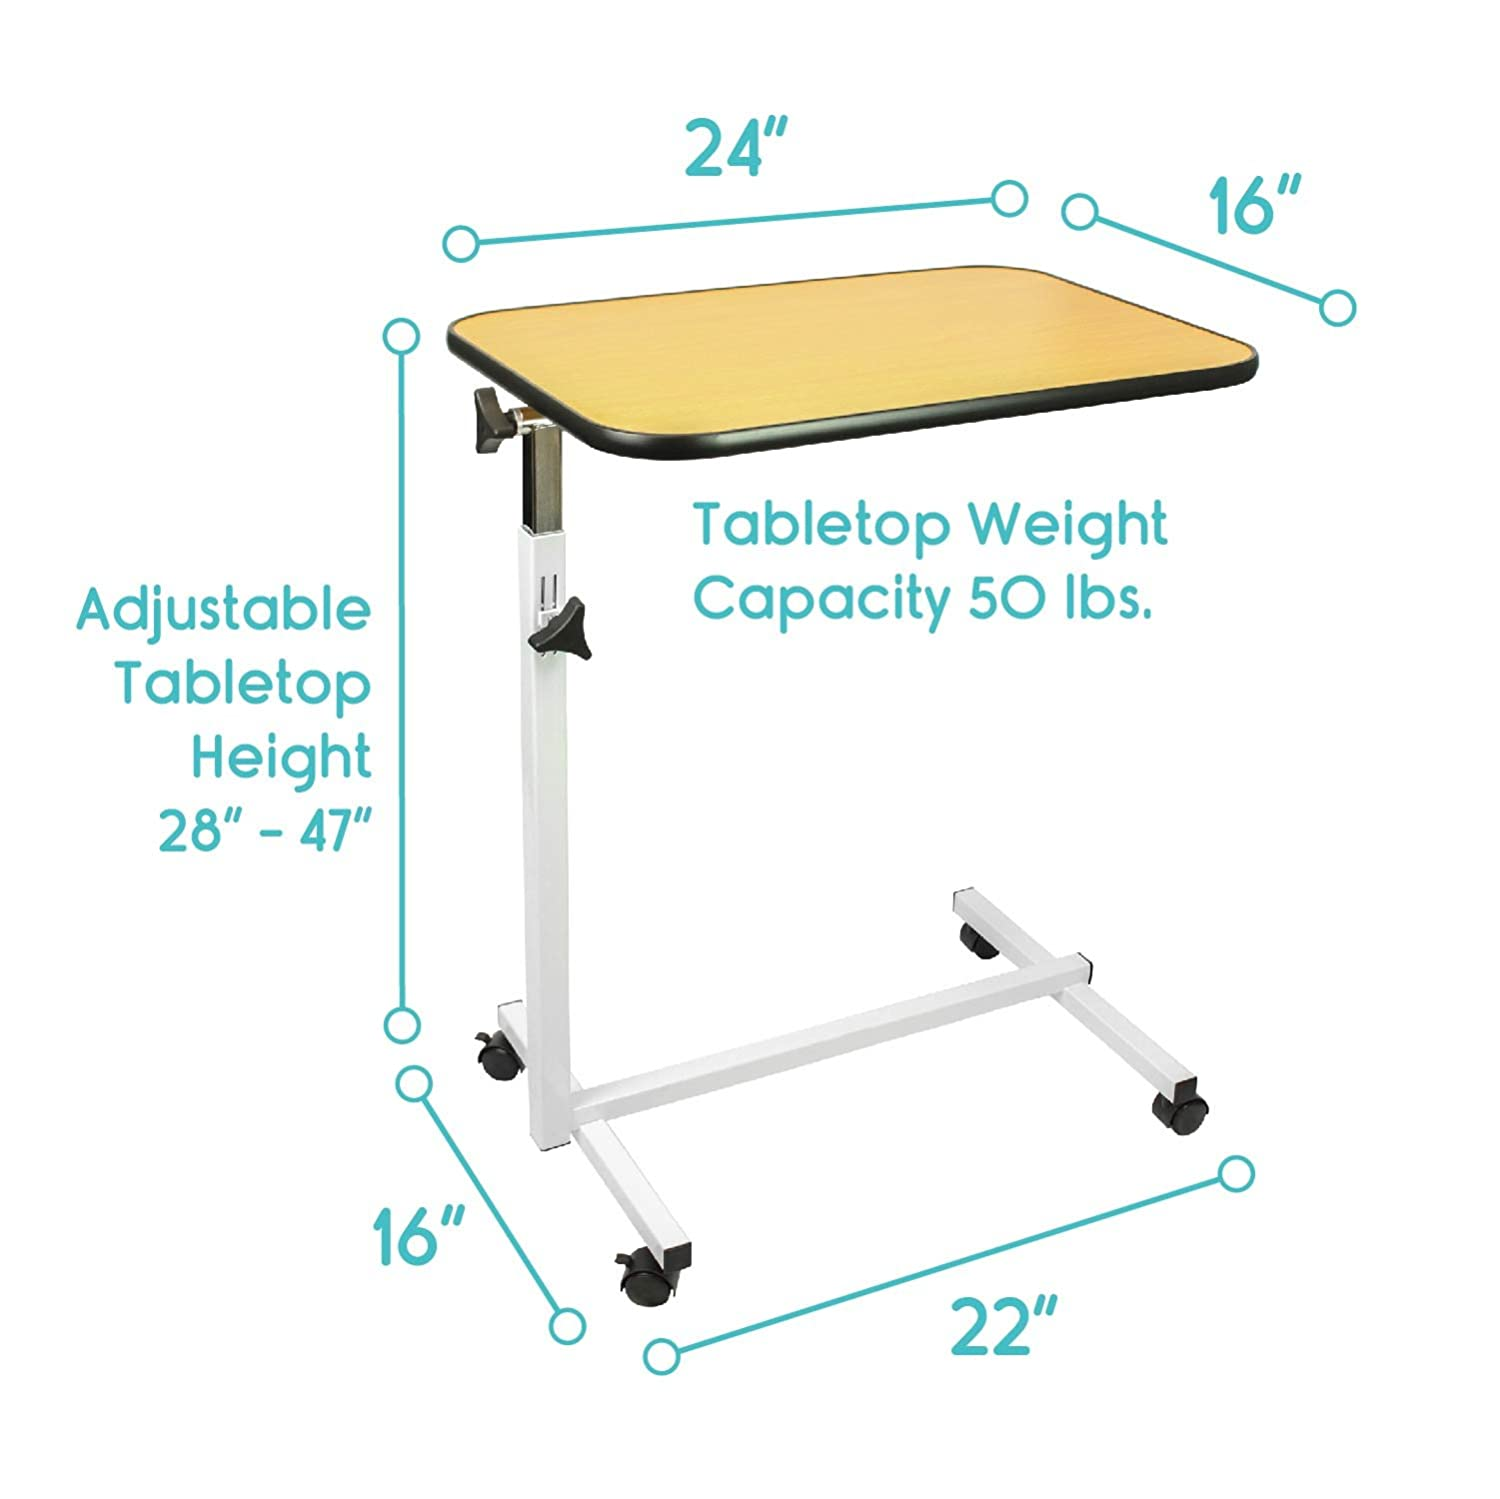 Overbed table food tray non tilt top bed hospital adjustable rolling - Amazon Com Overbed Table By Vive Swivel Tilt Top Rolling Tray Table Adjustable Bed Table For Home Or Hospital Laptop Reading Breakfast Cart For